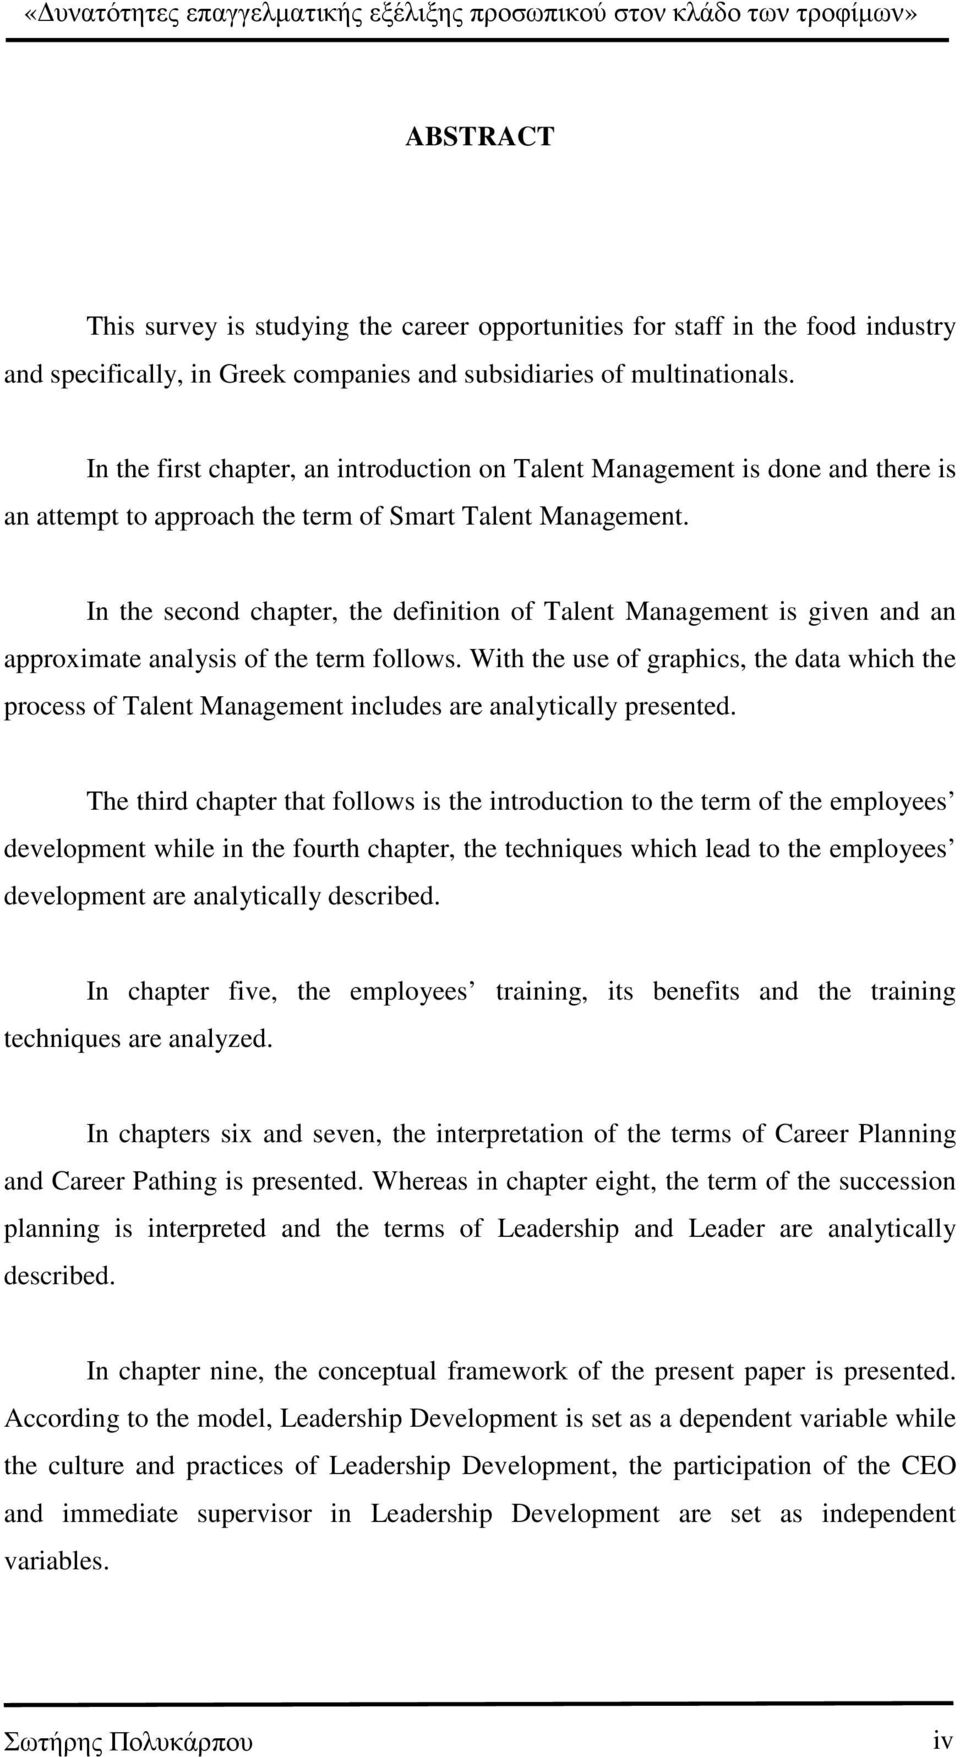 In the second chapter, the definition of Talent Management is given and an approximate analysis of the term follows.